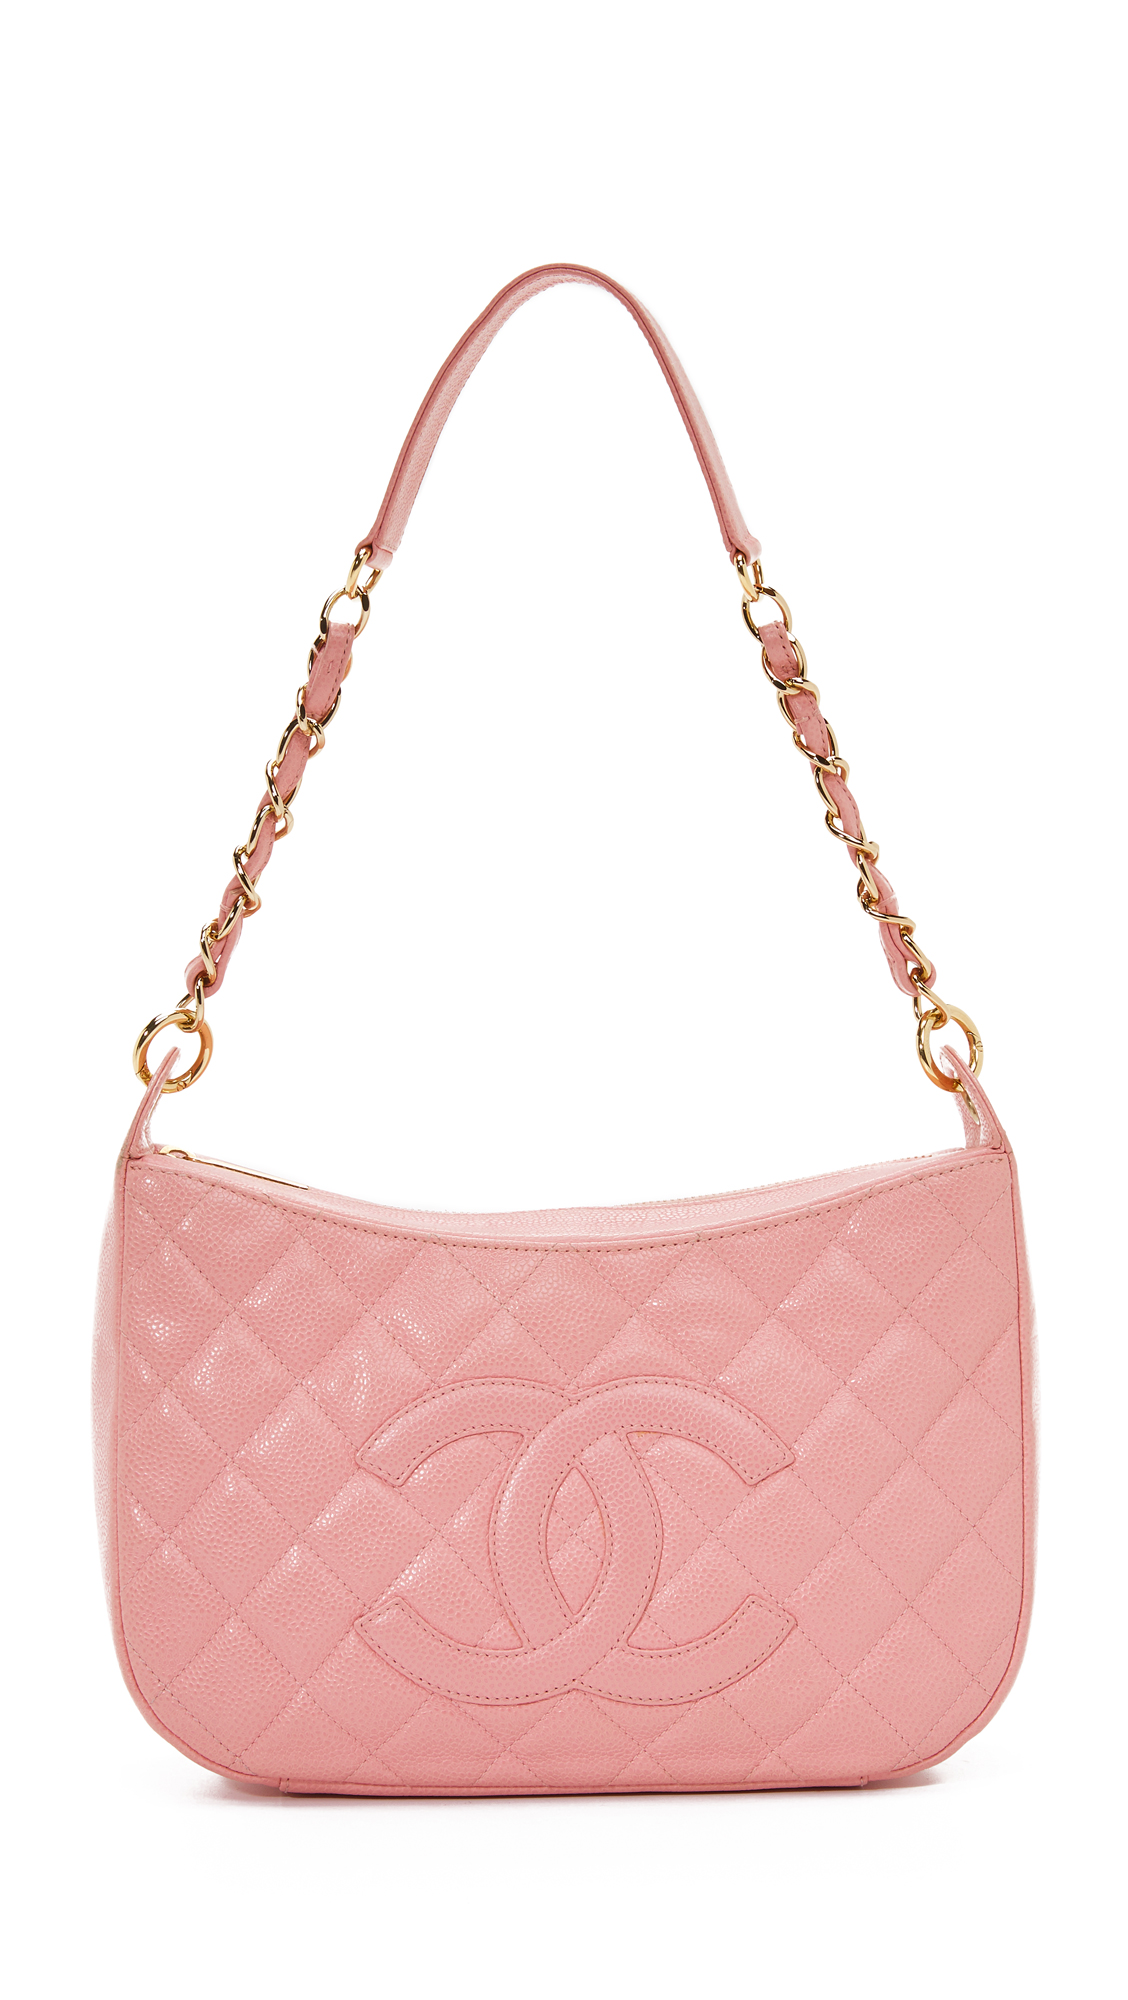 what goes around comes around female what goes around comes around chanel shoulder bag previously owned pink